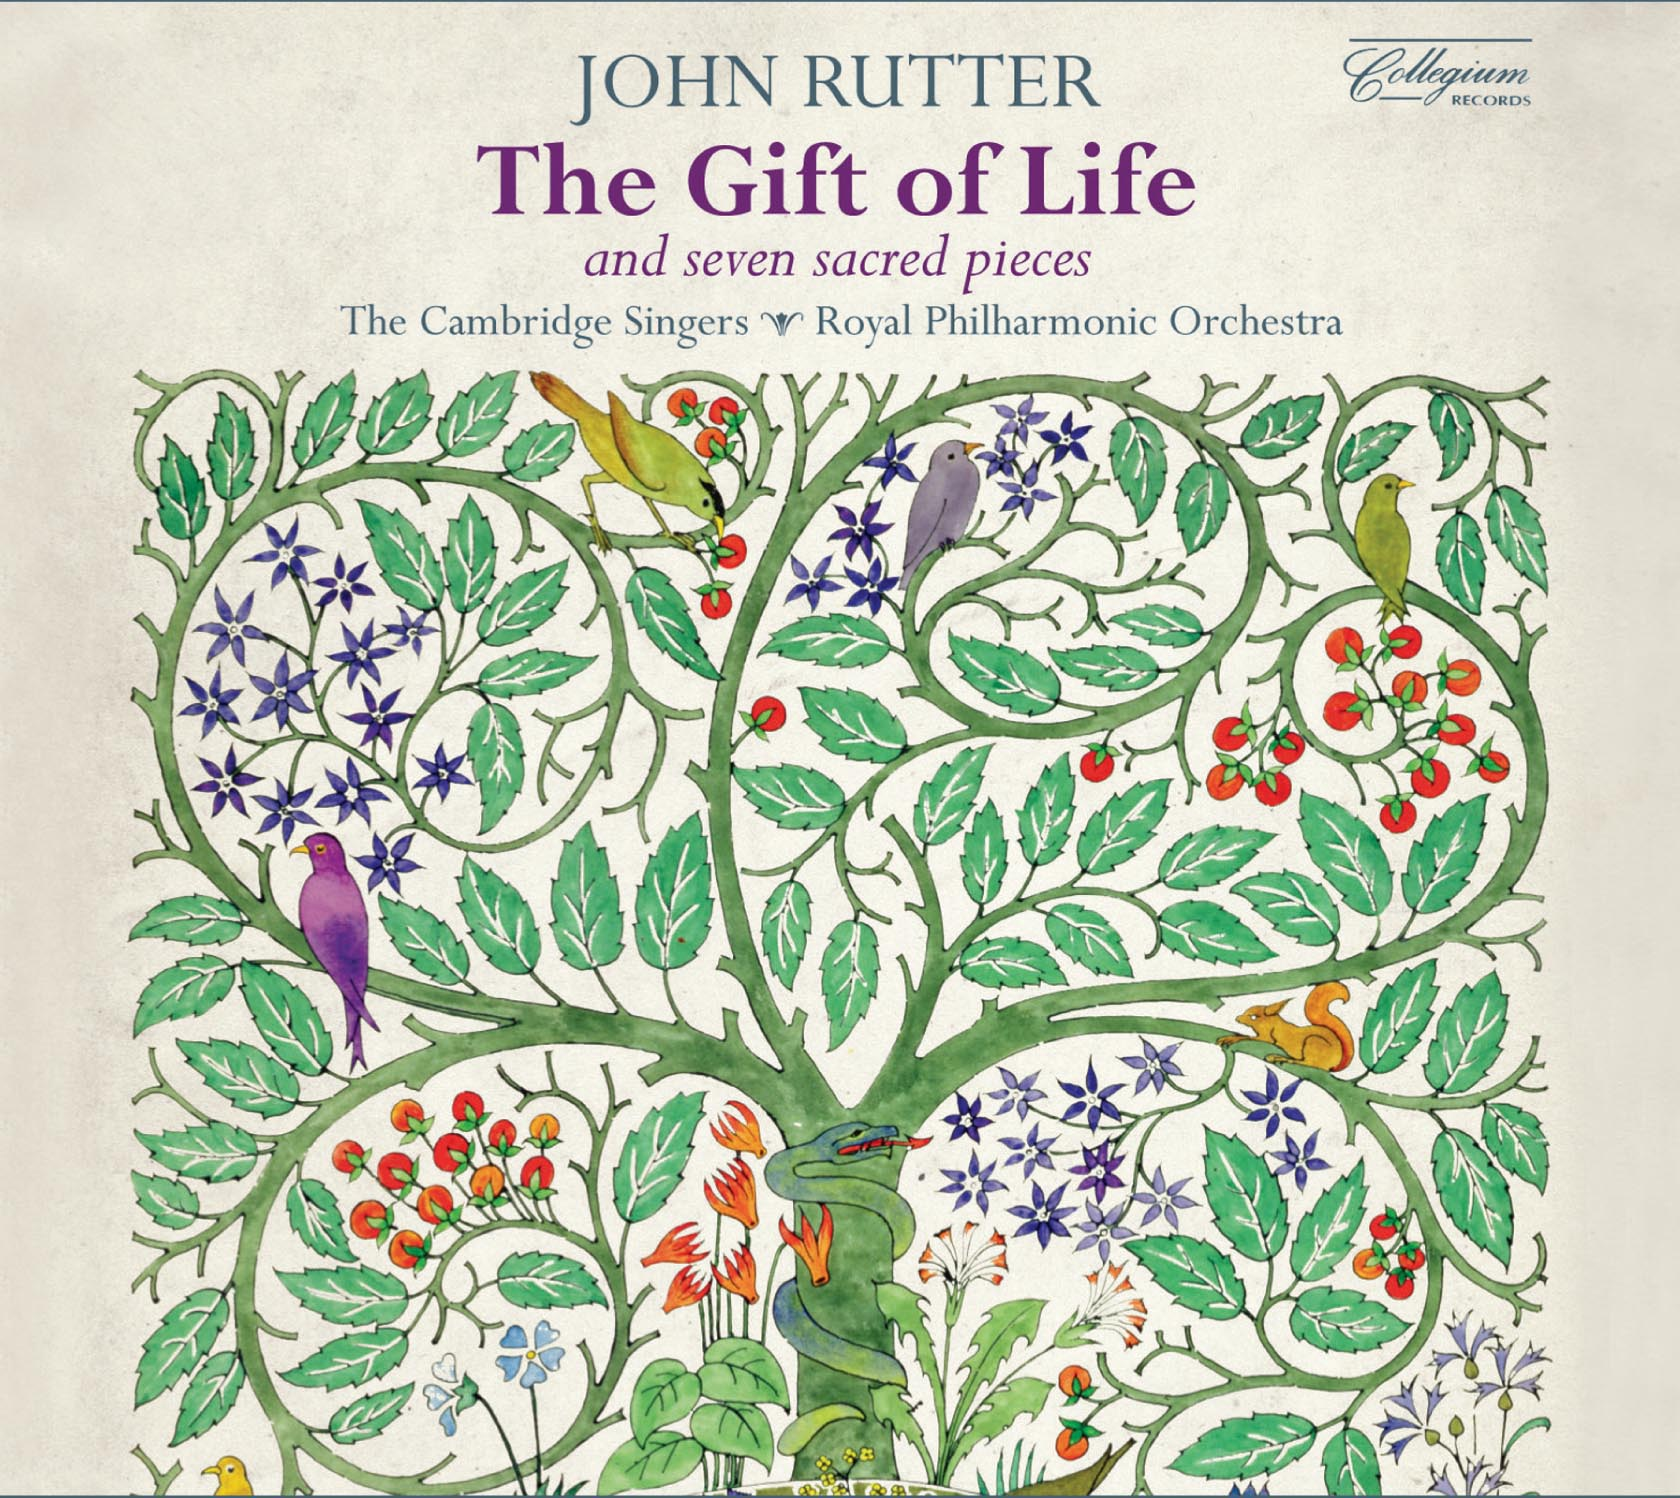 The Gift of Life CD released